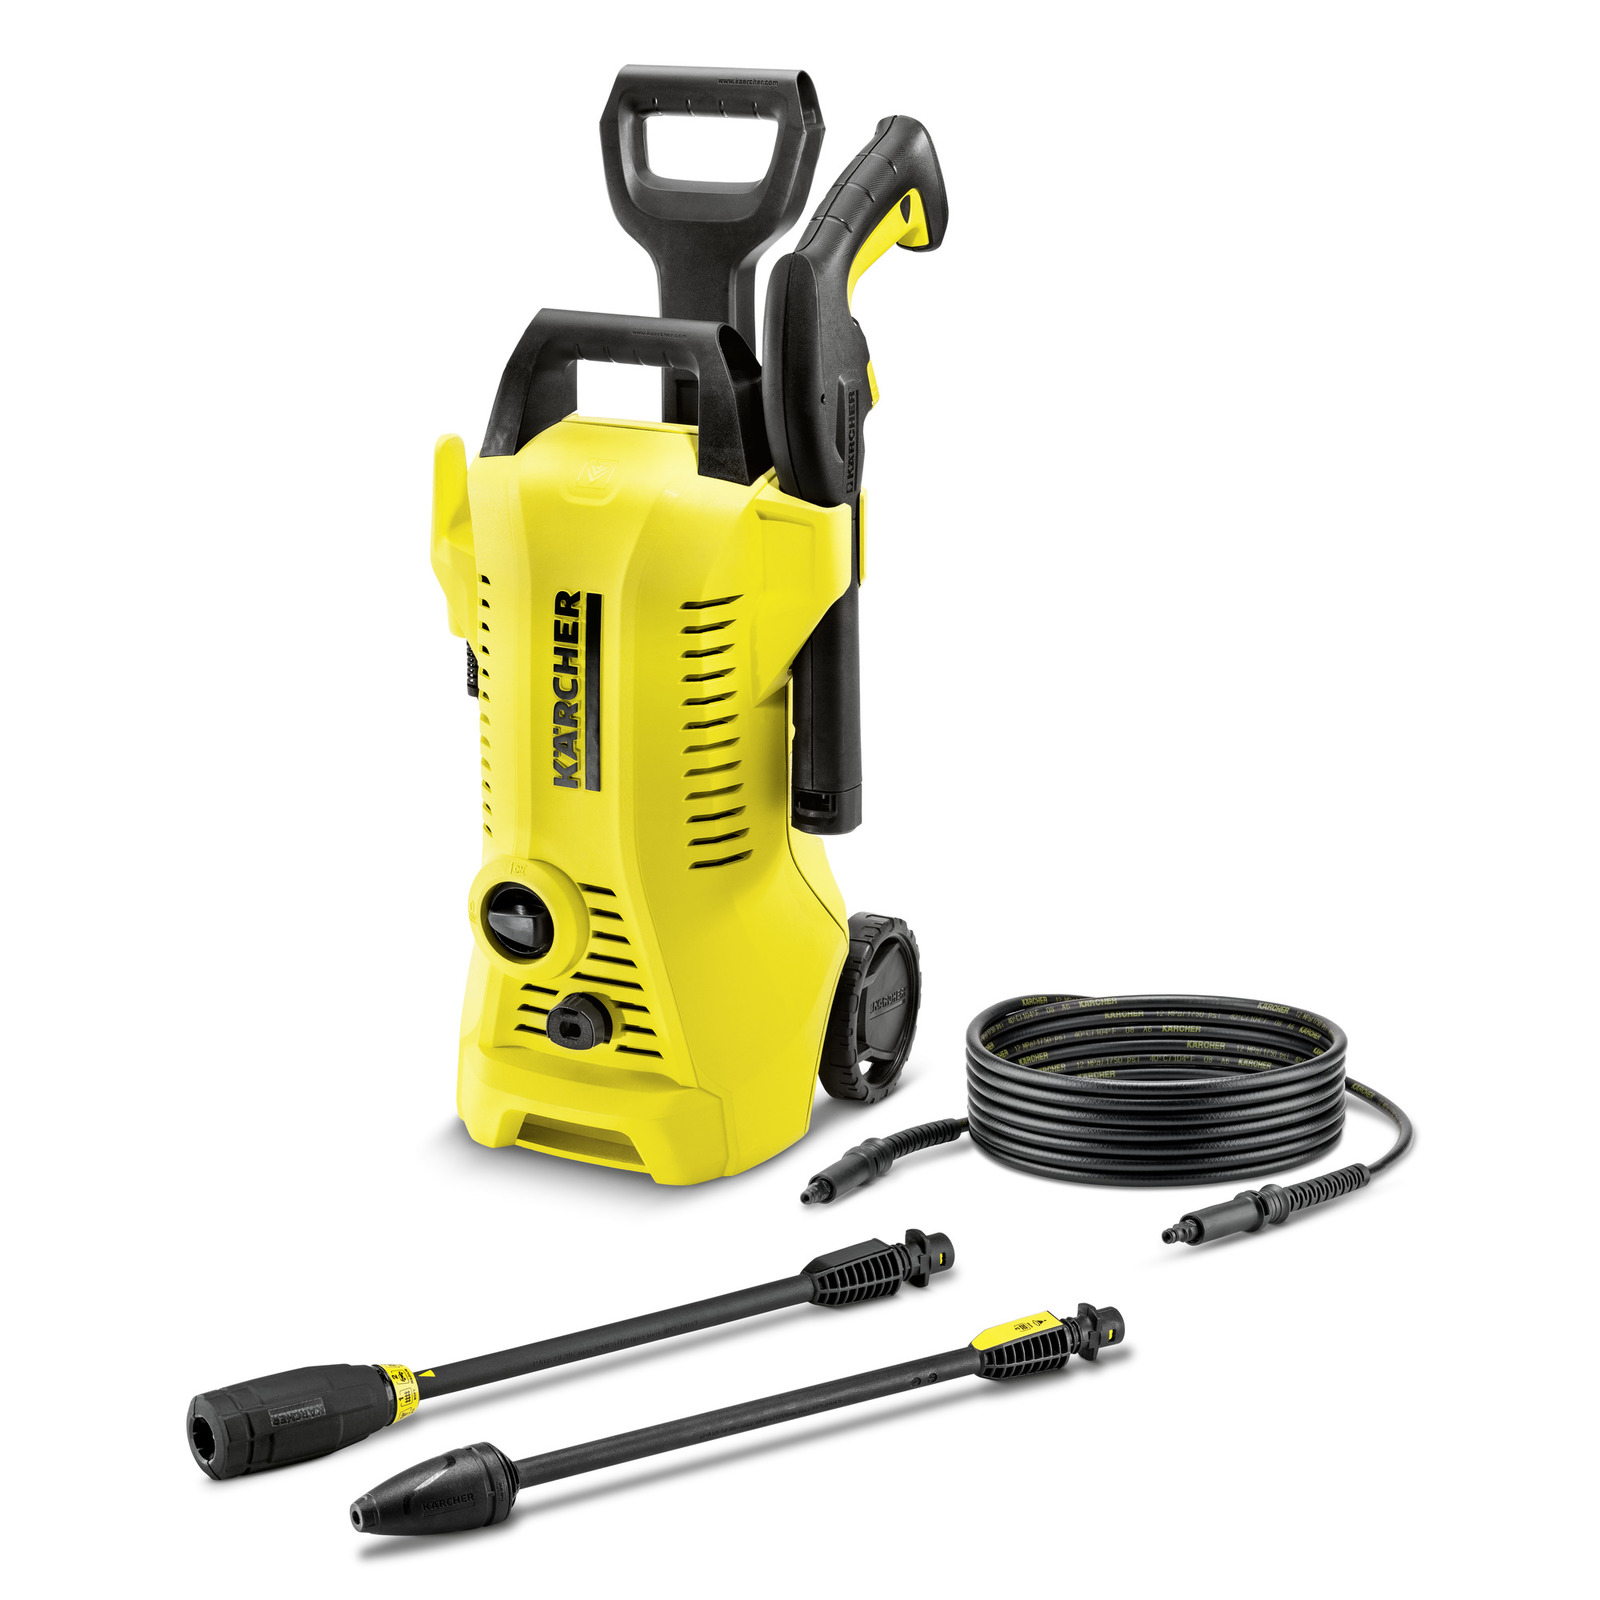 Pressure washer K 2 Full Control | Kärcher UK